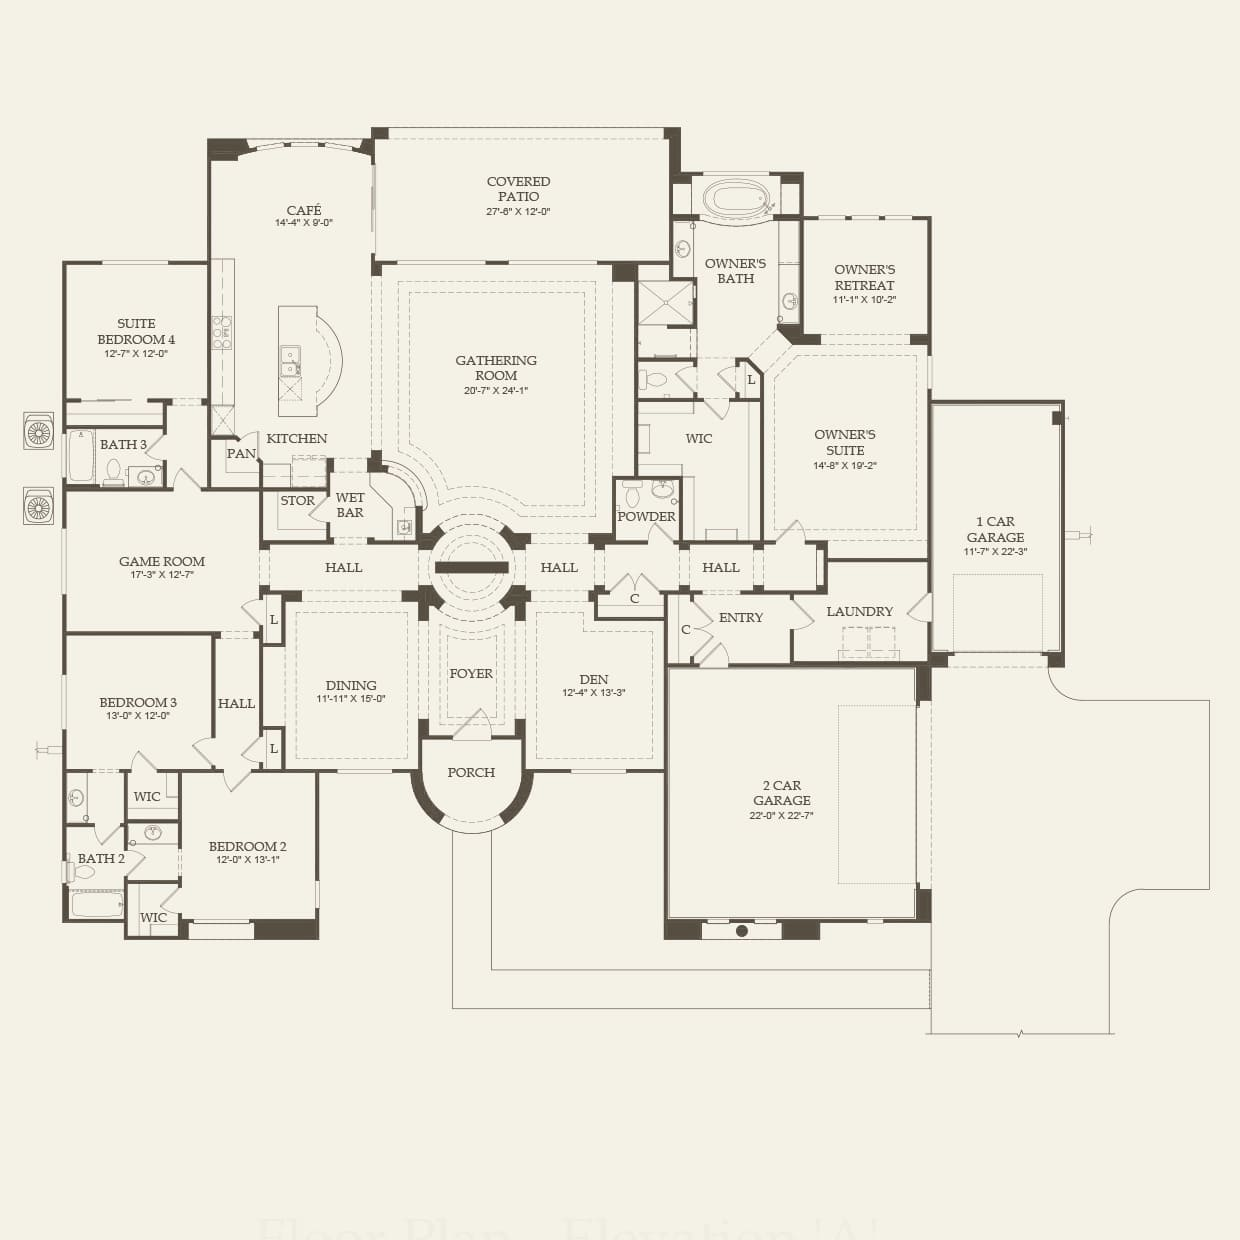 Pulte home floor plans in arizona home fatare Monarch homes floor plans